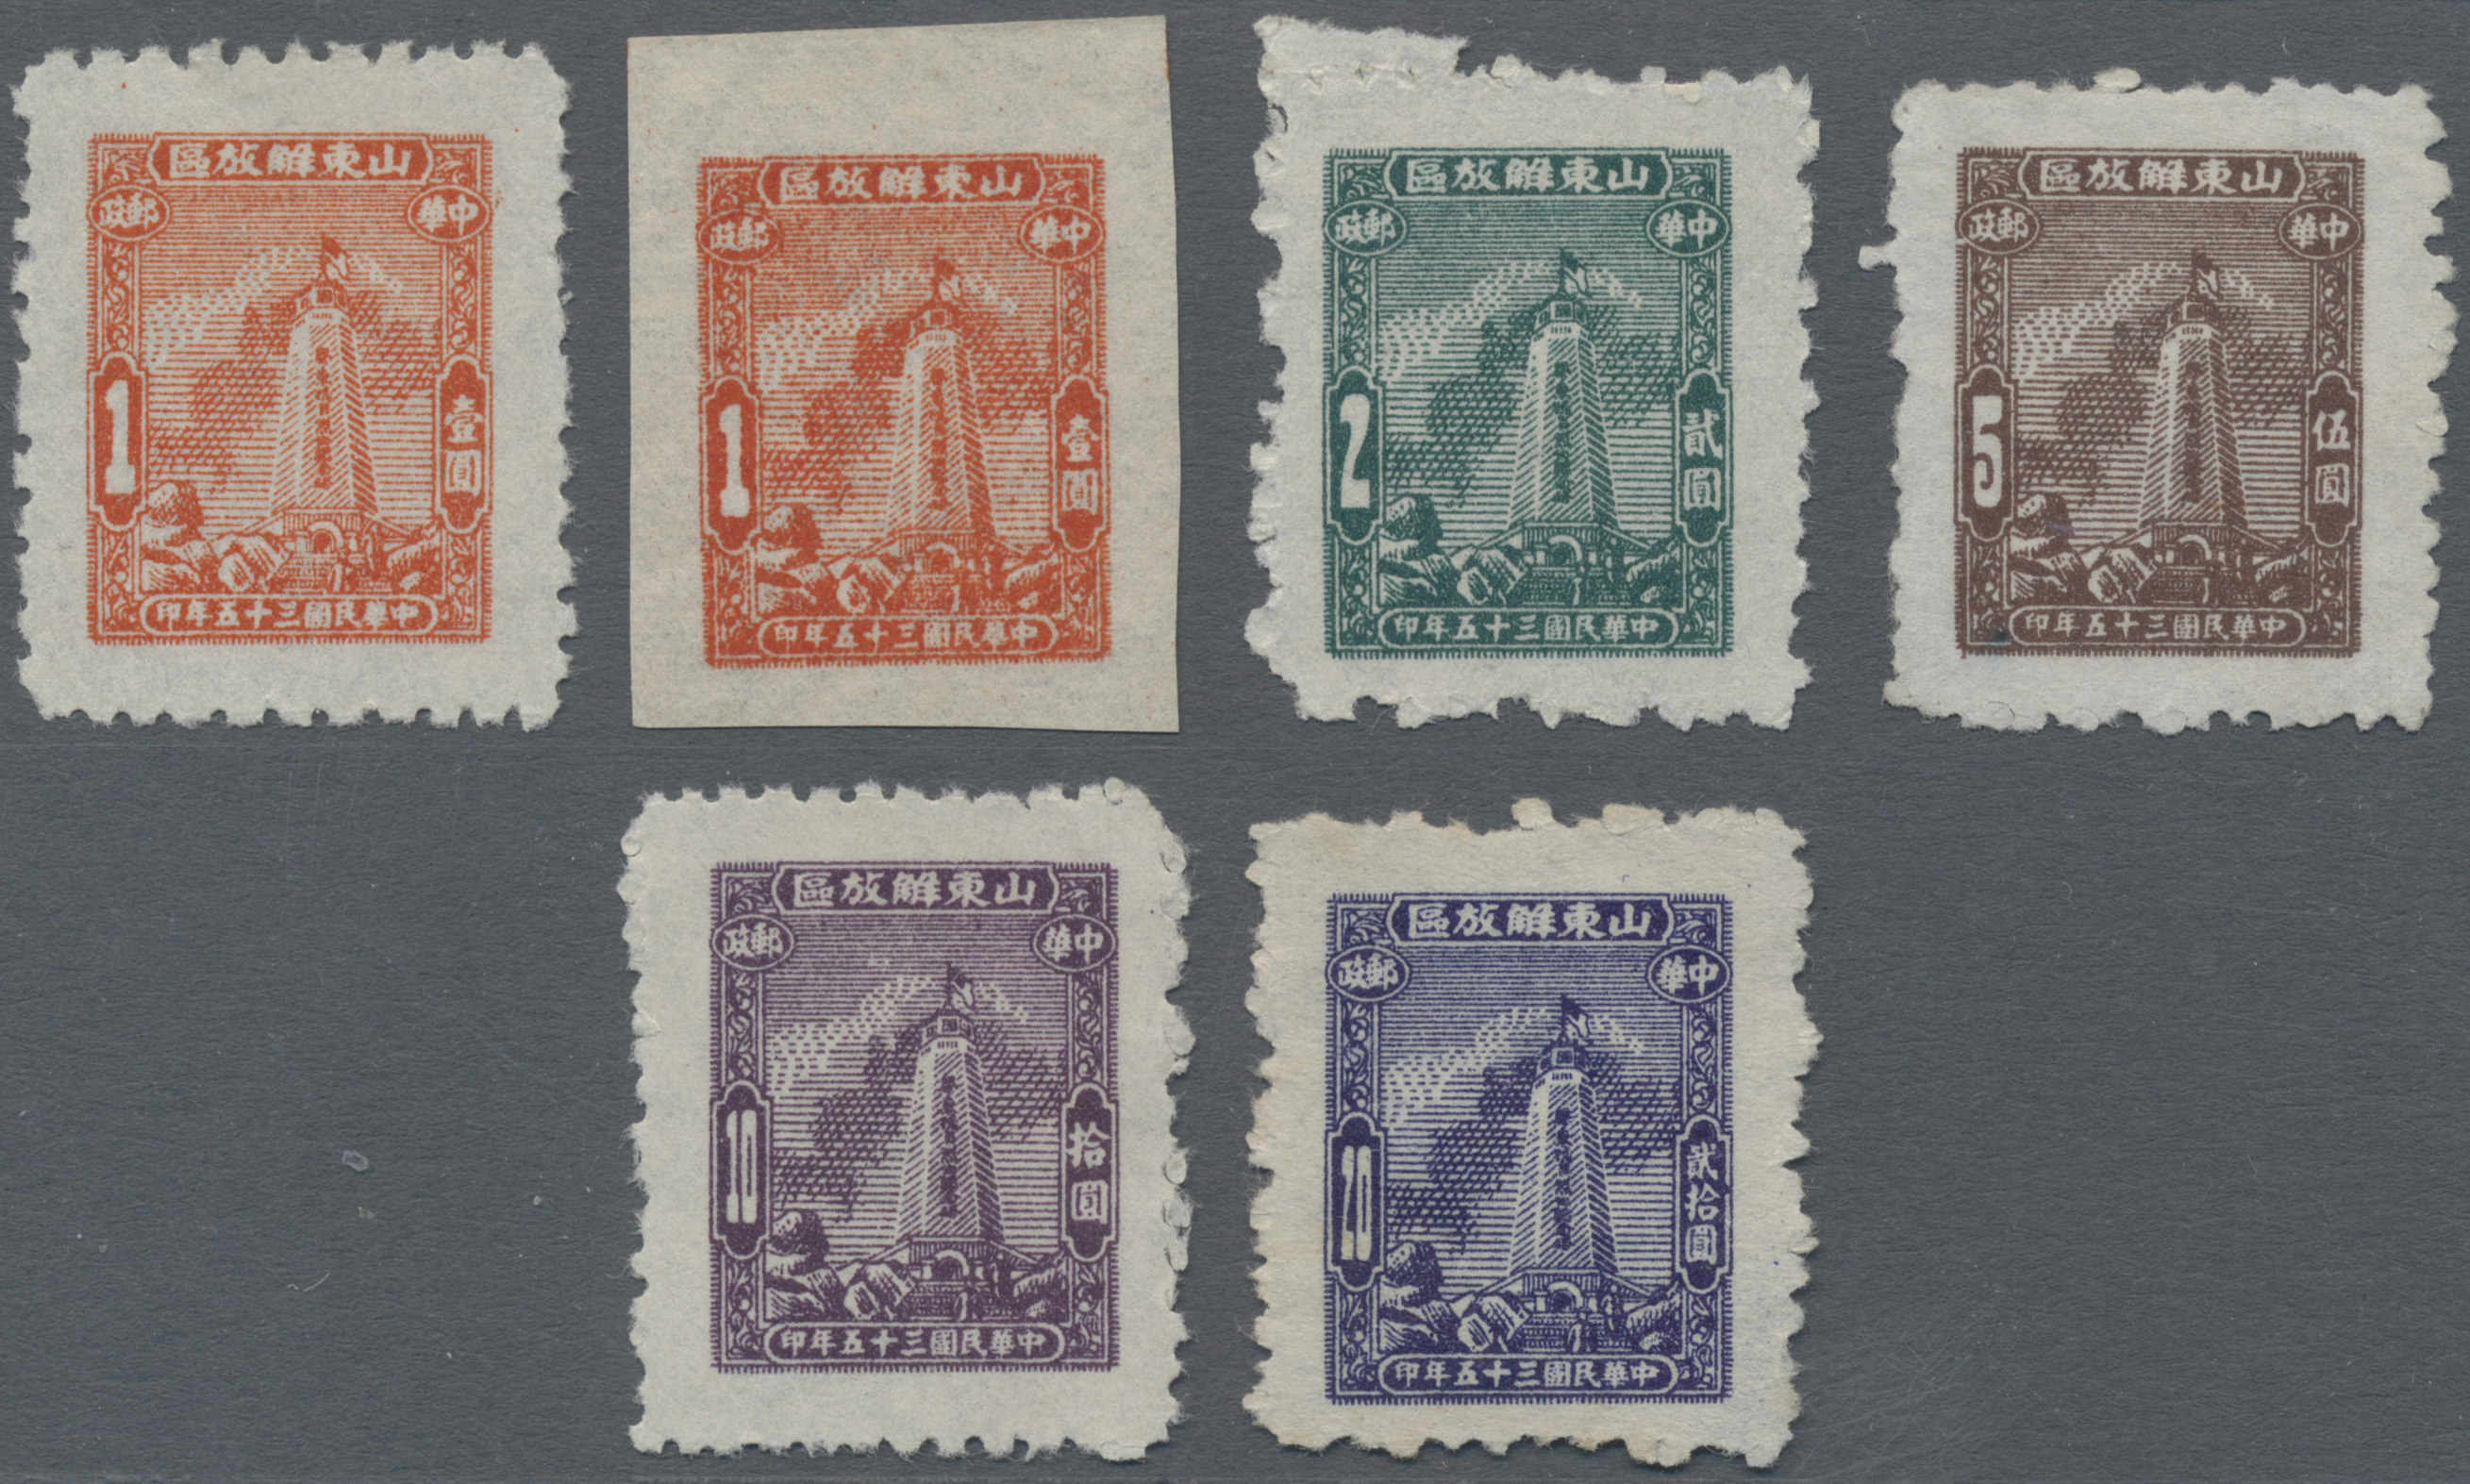 Lot 05080 - China - Volksrepublik - Provinzen  -  Auktionshaus Christoph Gärtner GmbH & Co. KG Sale #46 Special Auction China - including Liberated Areas